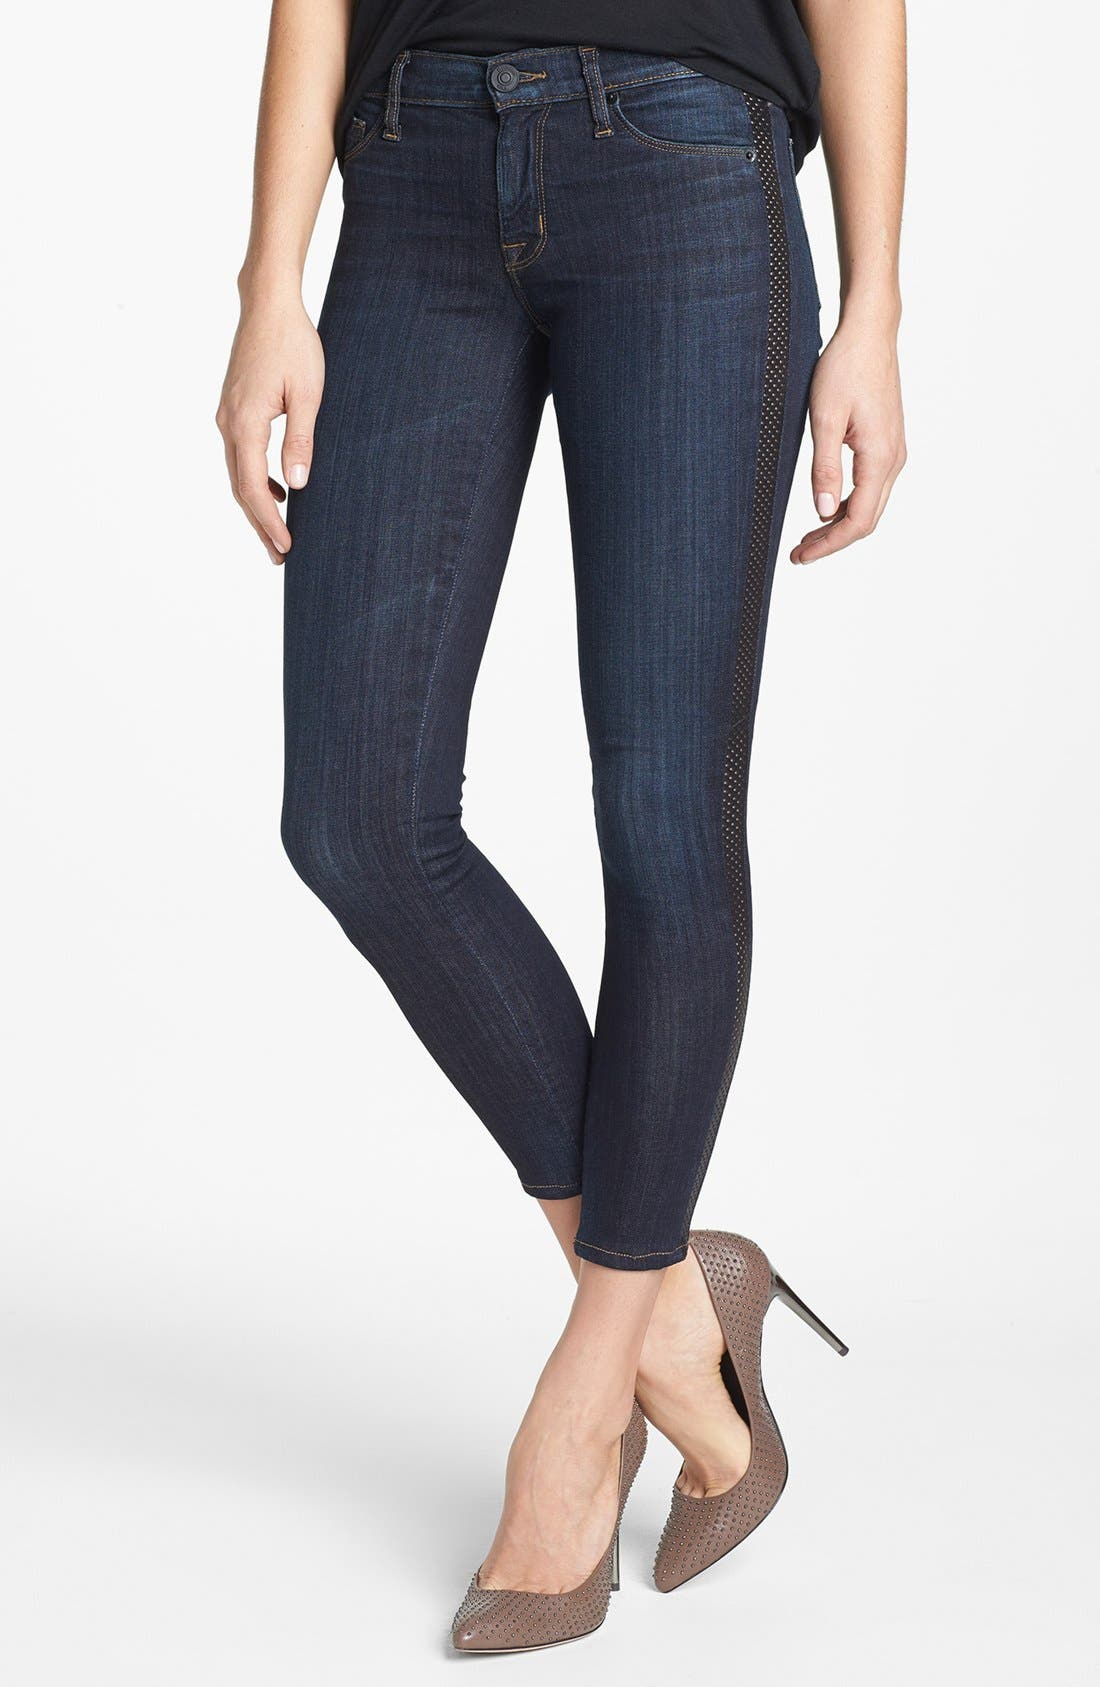 Main Image - Hudson Jeans 'Ava' Leather Tuxedo Stripe Crop Skinny Jeans (Shirley)